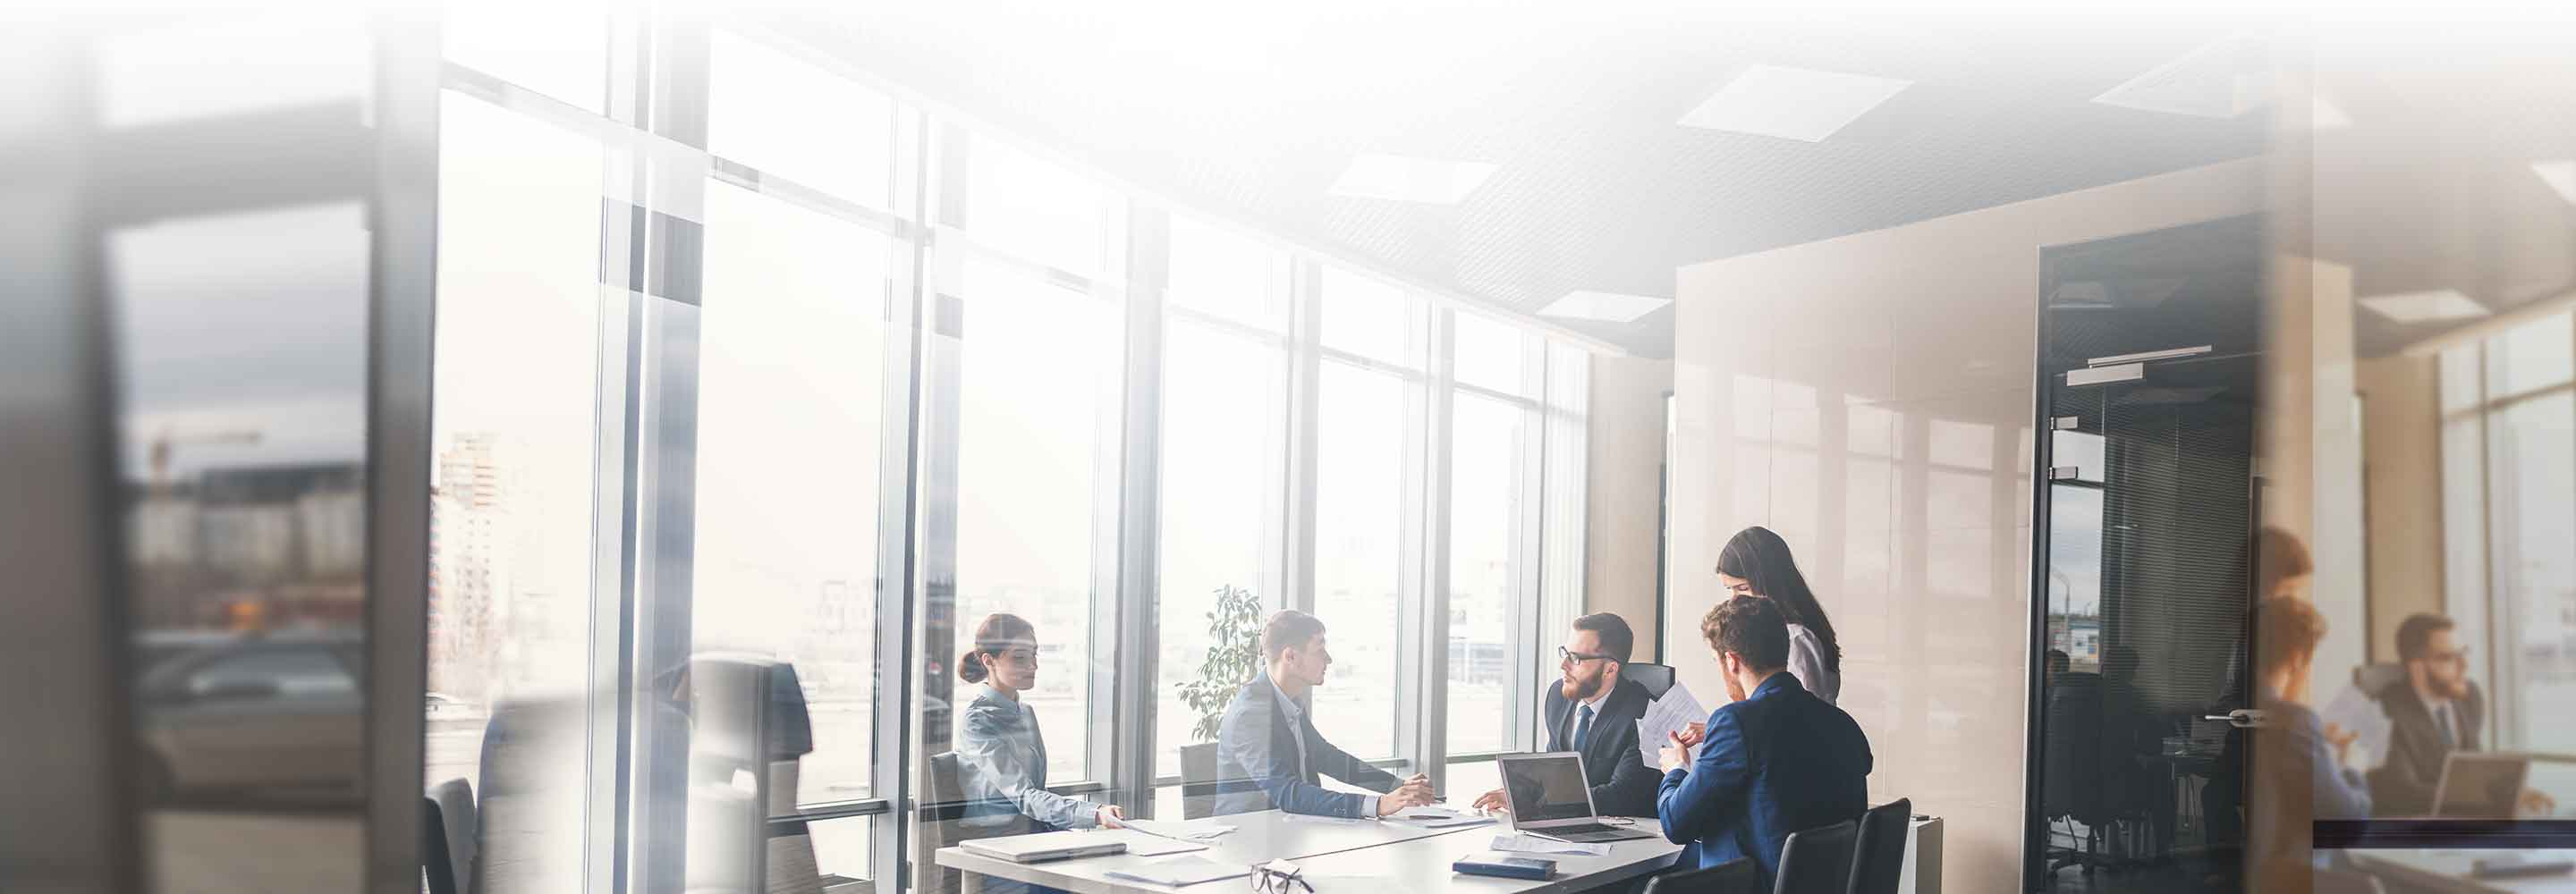 Coworkers discussing something in meeting room